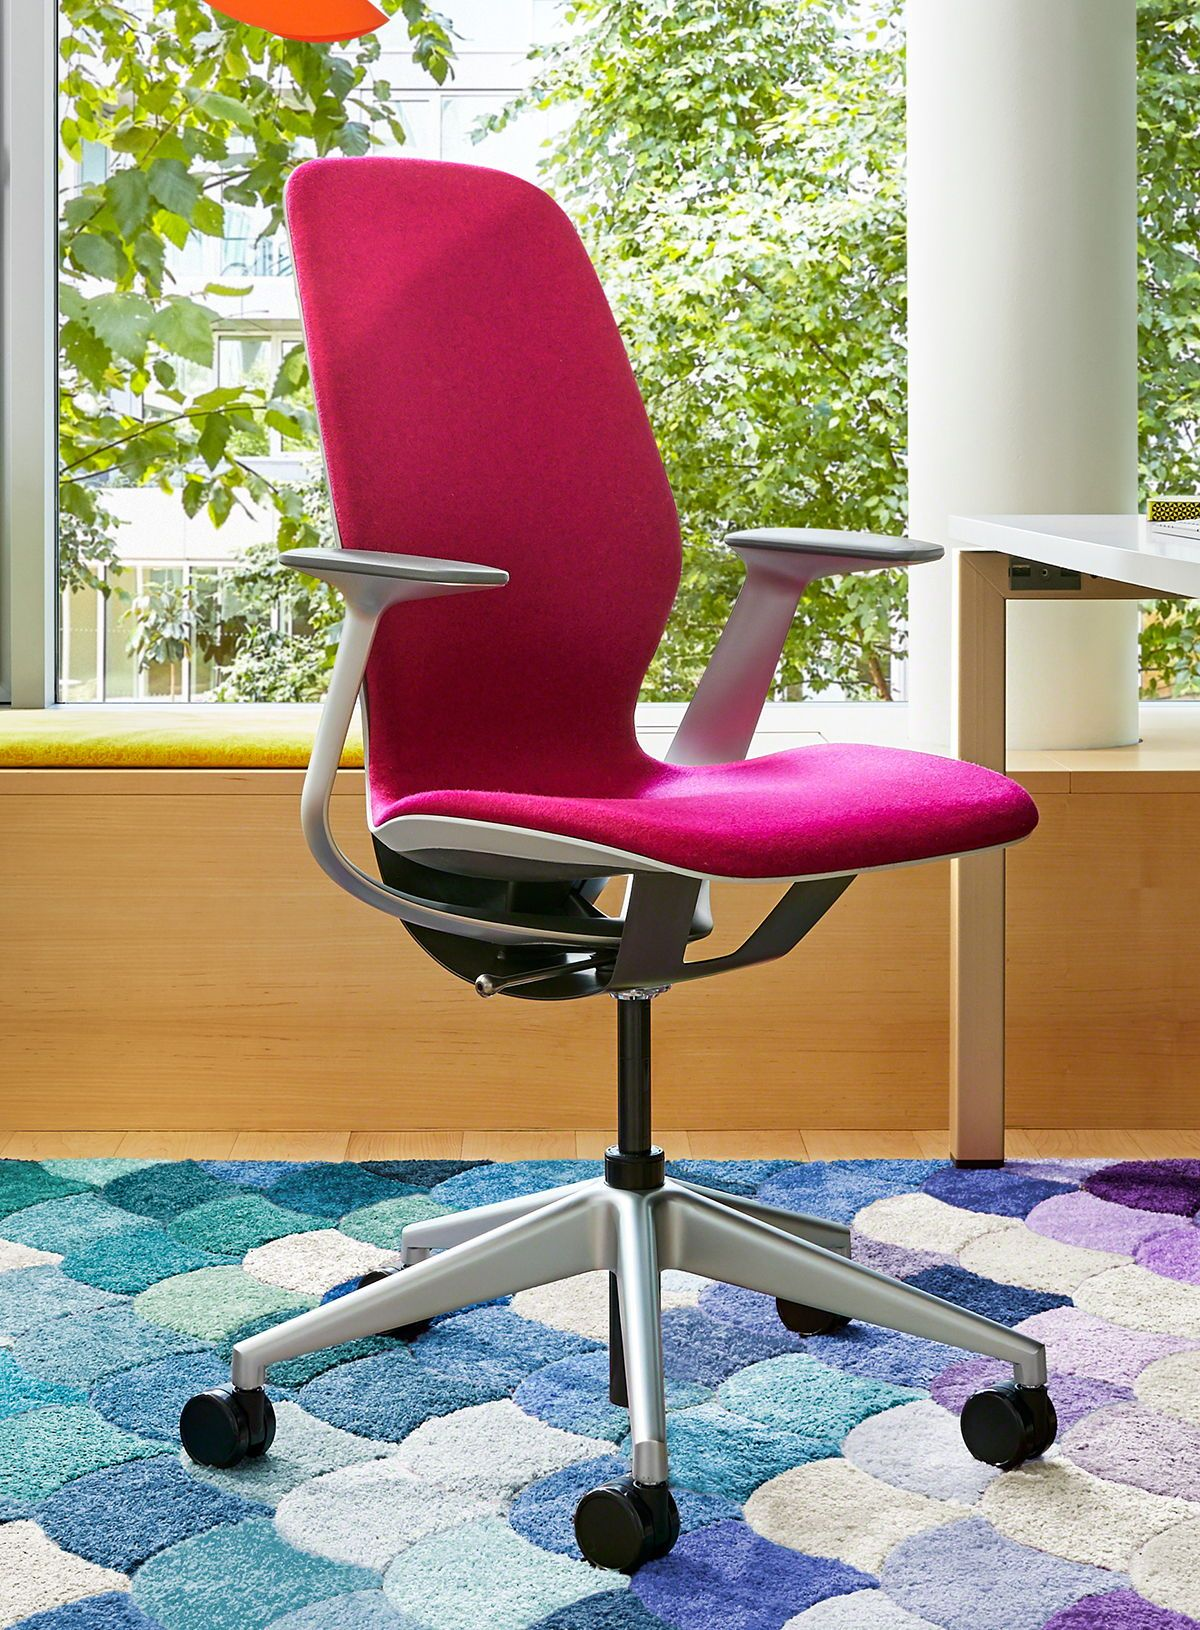 Surprising Silq Steelcase Chairs Chair Ergonomic Office Chair Home Interior And Landscaping Ologienasavecom